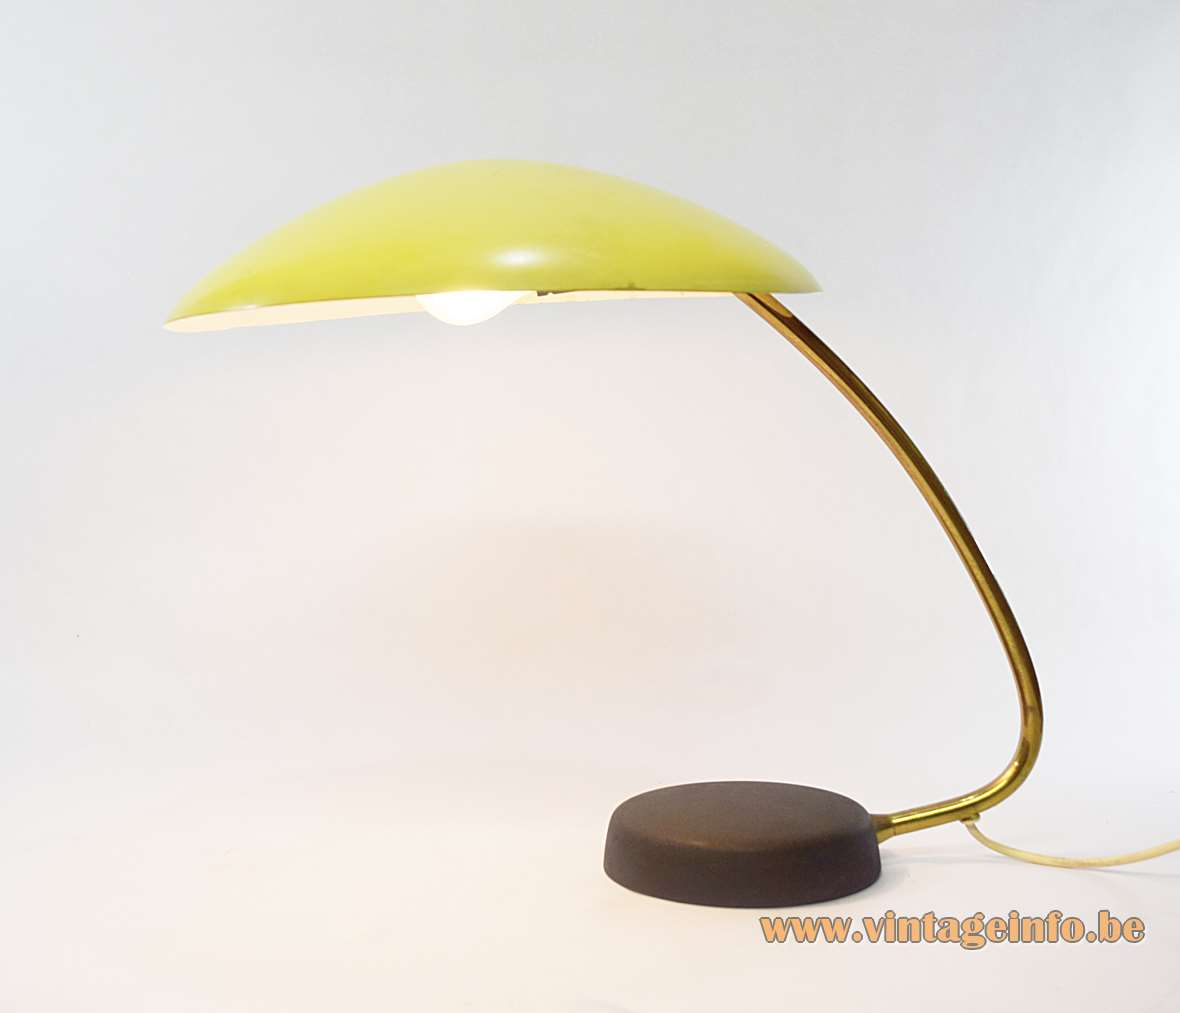 1950s Cosack Desk Lamp Gecos Germany 1950s 1960s yellow brass aluminium cast iron black wrinkle paint